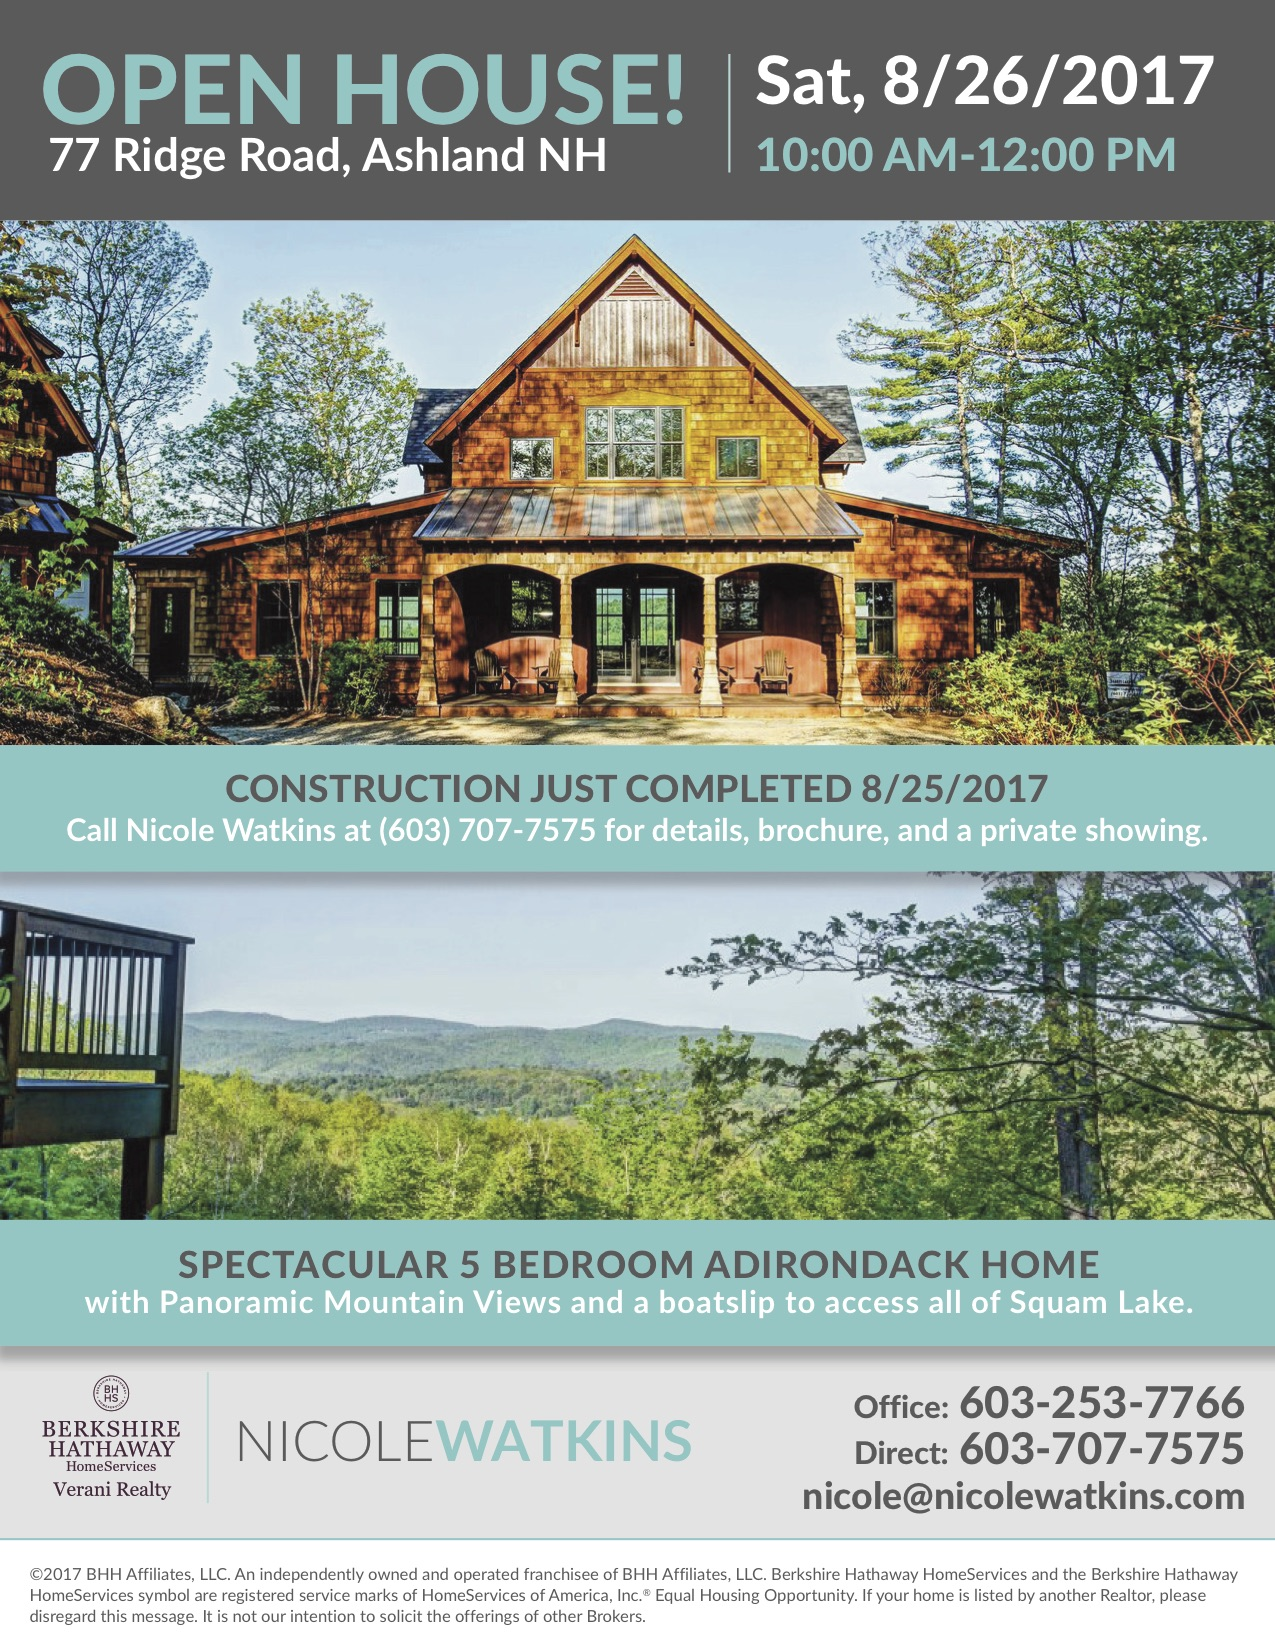 77 Ridge Road Open House Flier 2017